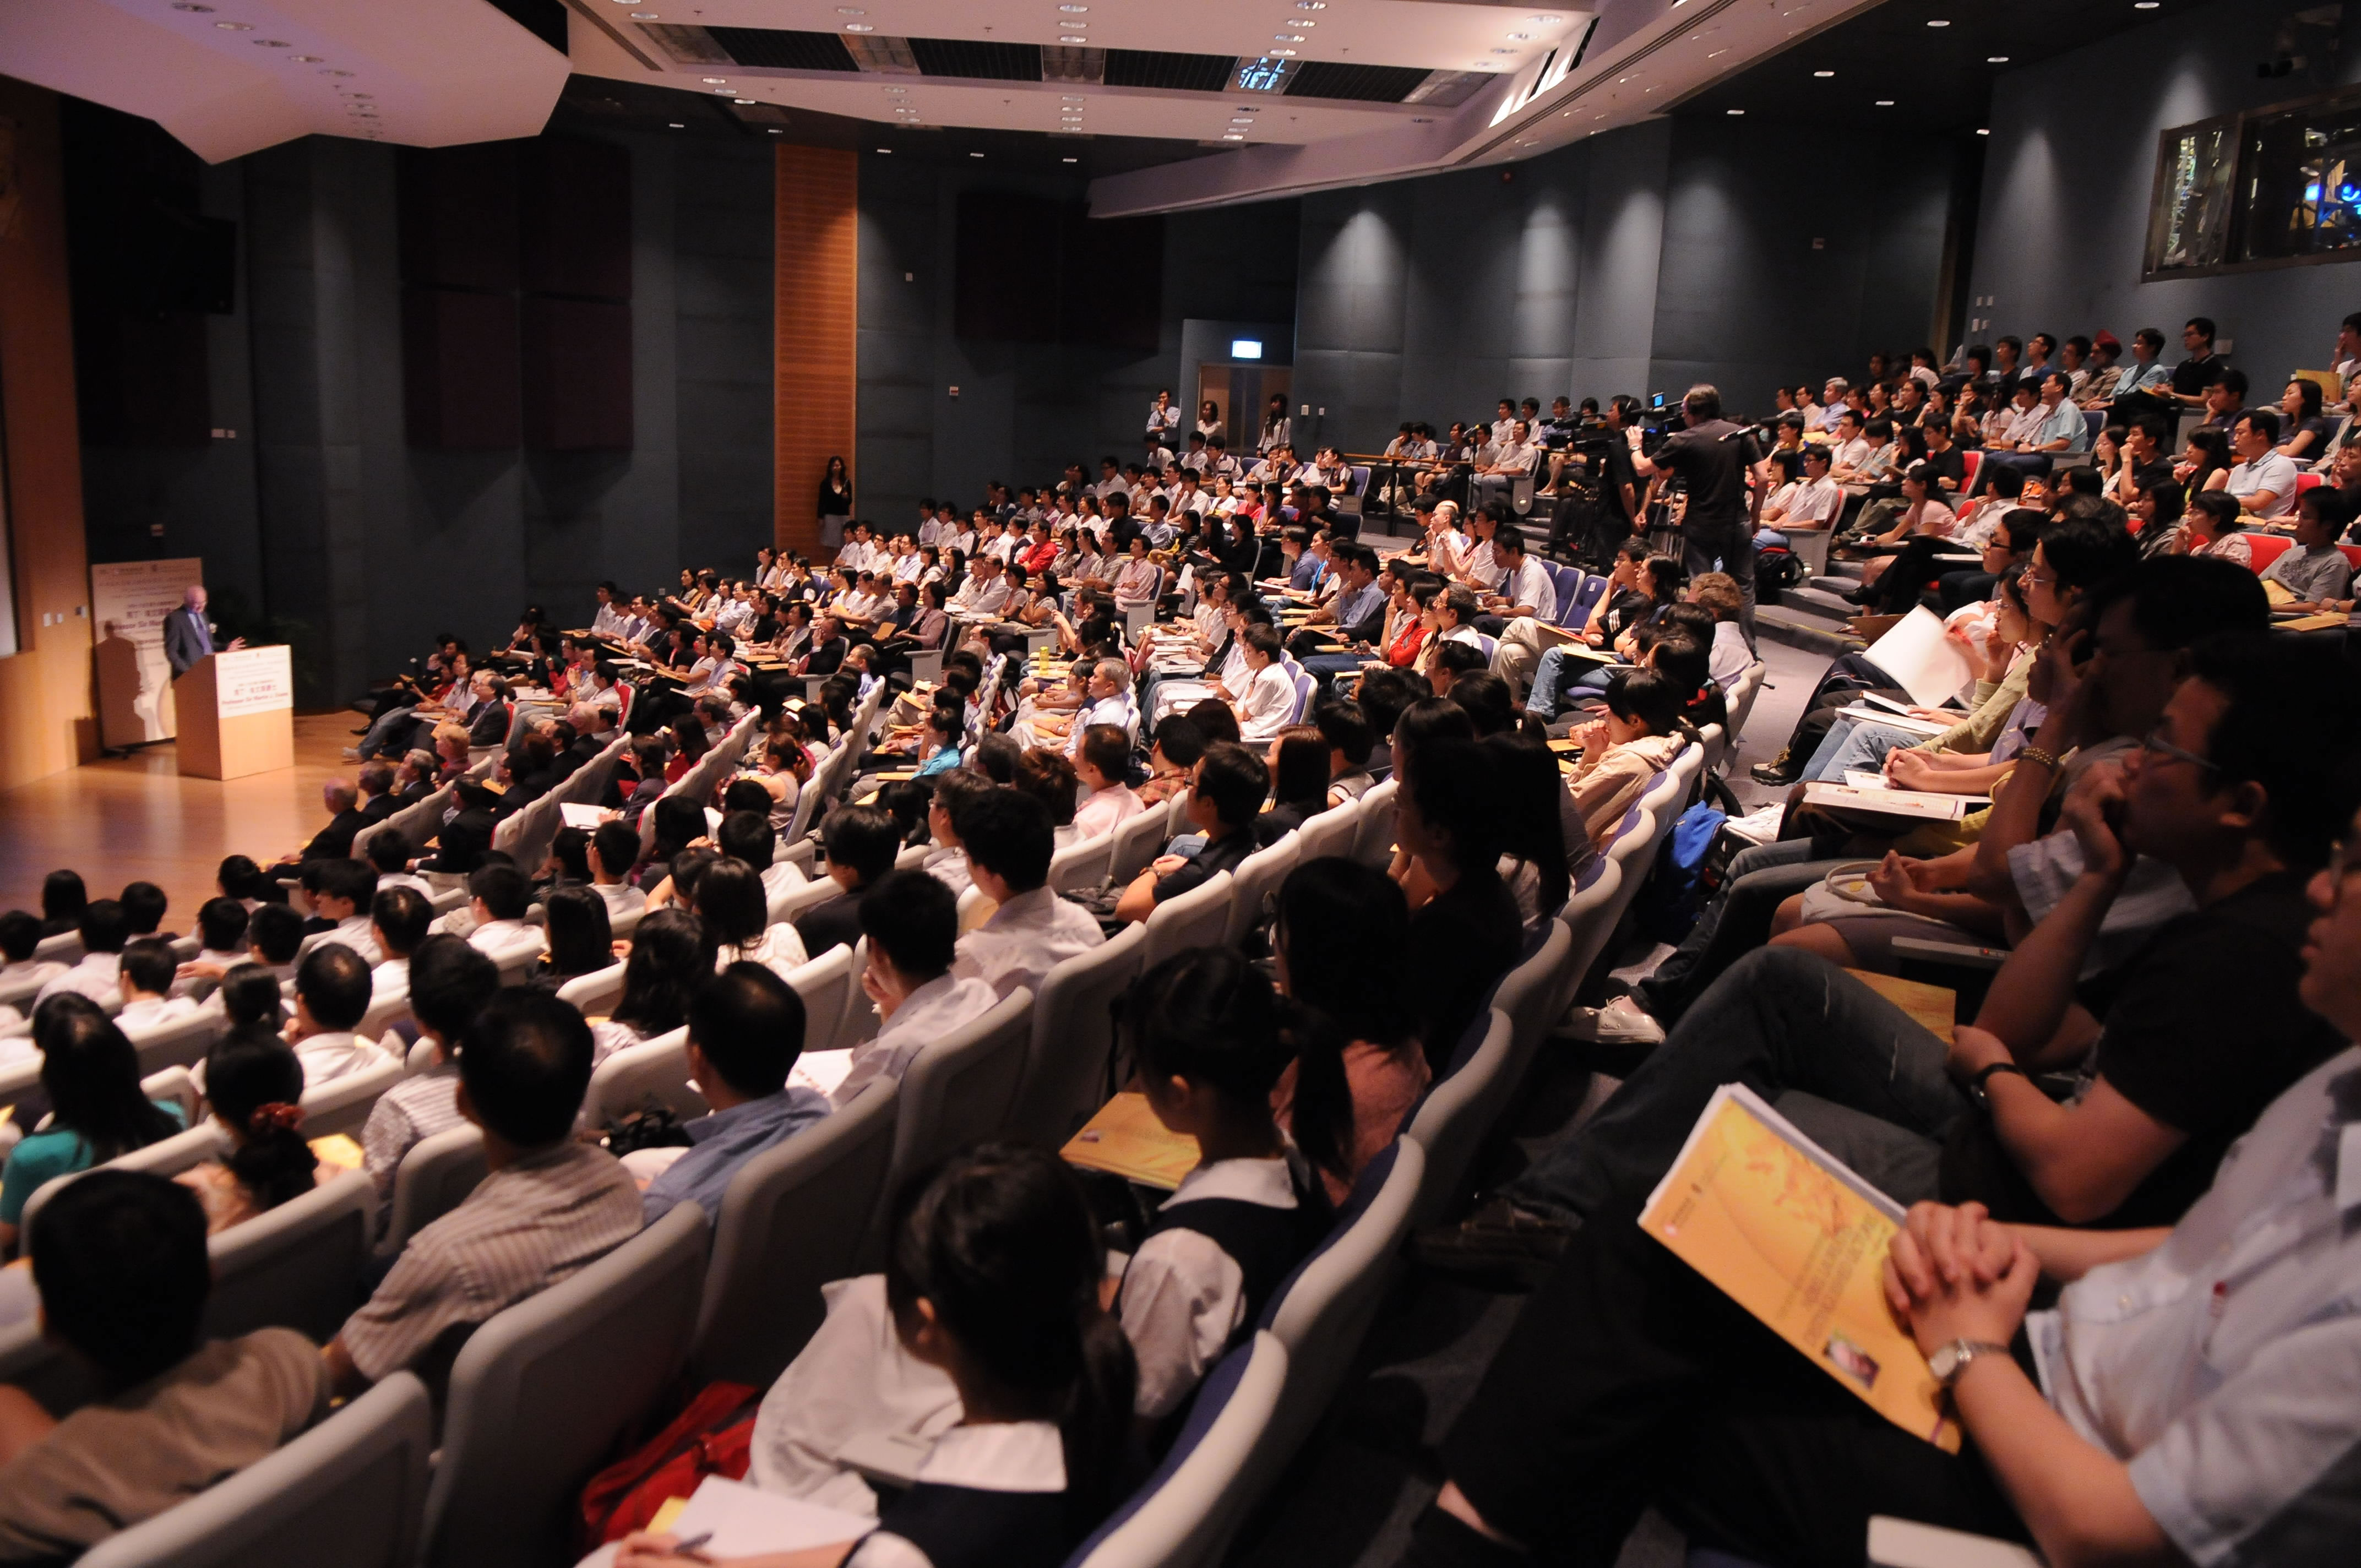 Over 500 guests attend the lecture